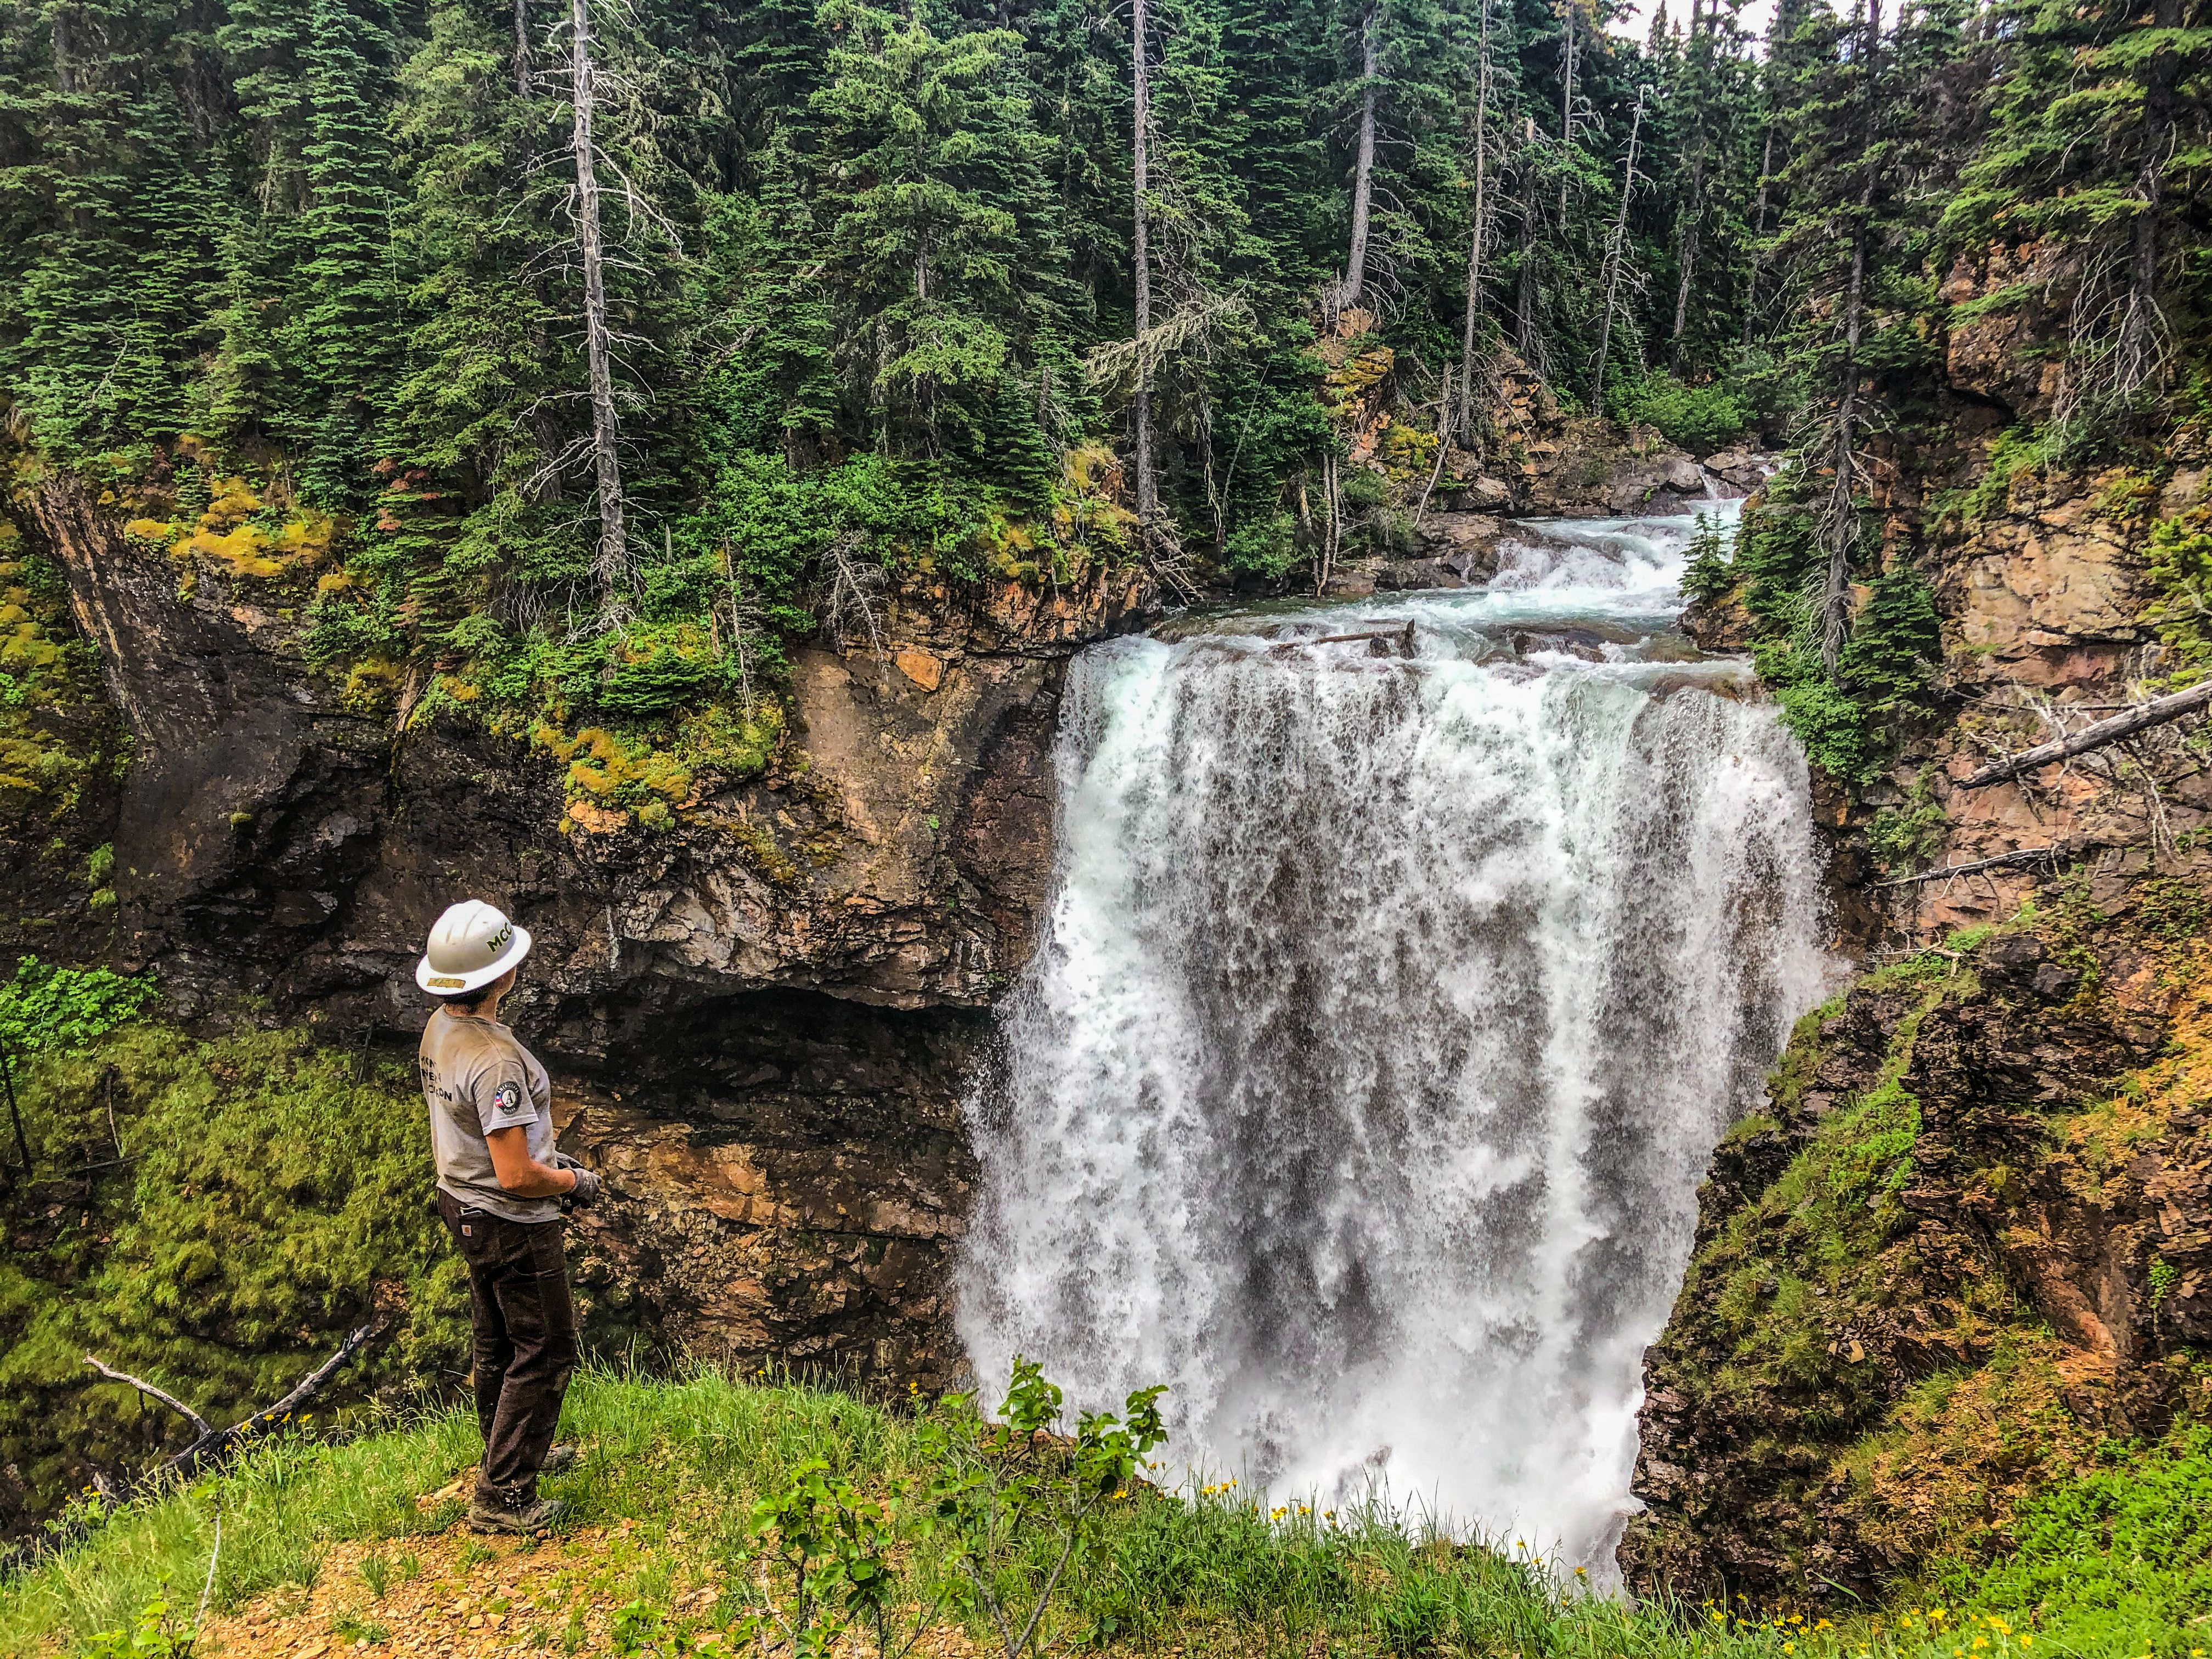 Crew member with MCC gear watching a beautiful waterfall enjoying the outdoor beauty